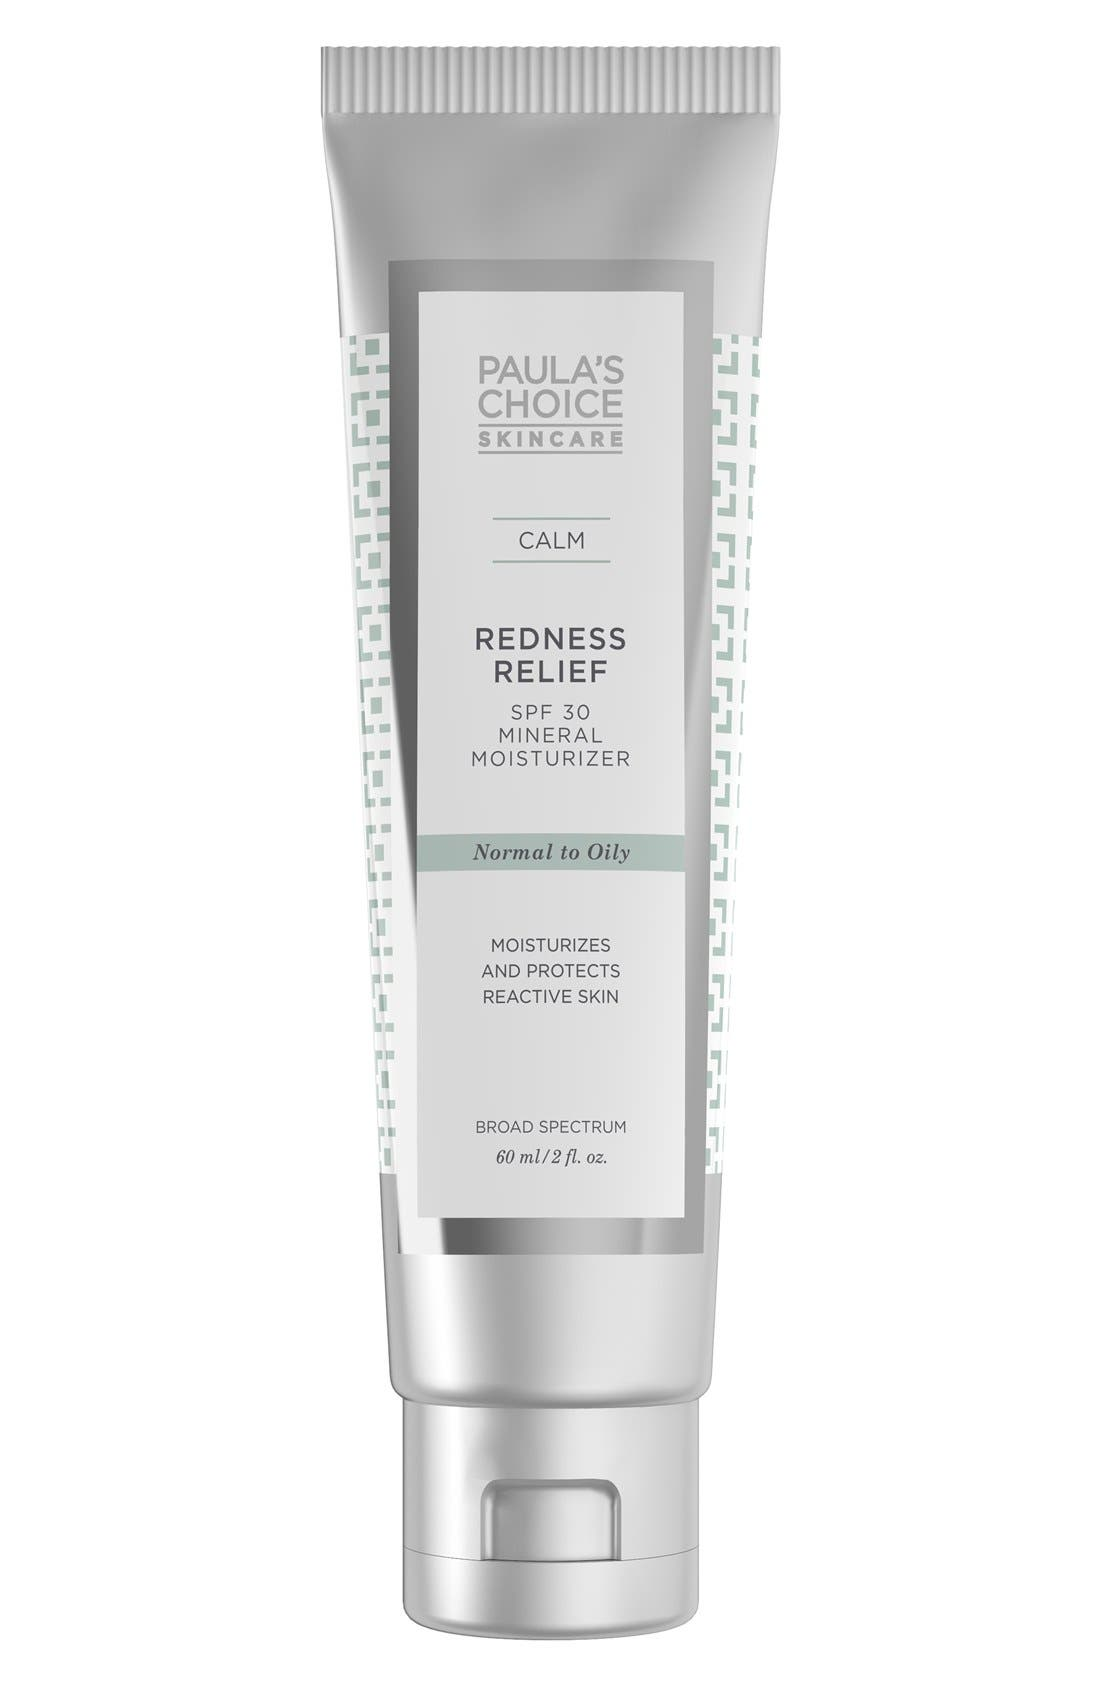 Paula's Choice Calm Redness Relief Mineral Moisturizer SPF 30